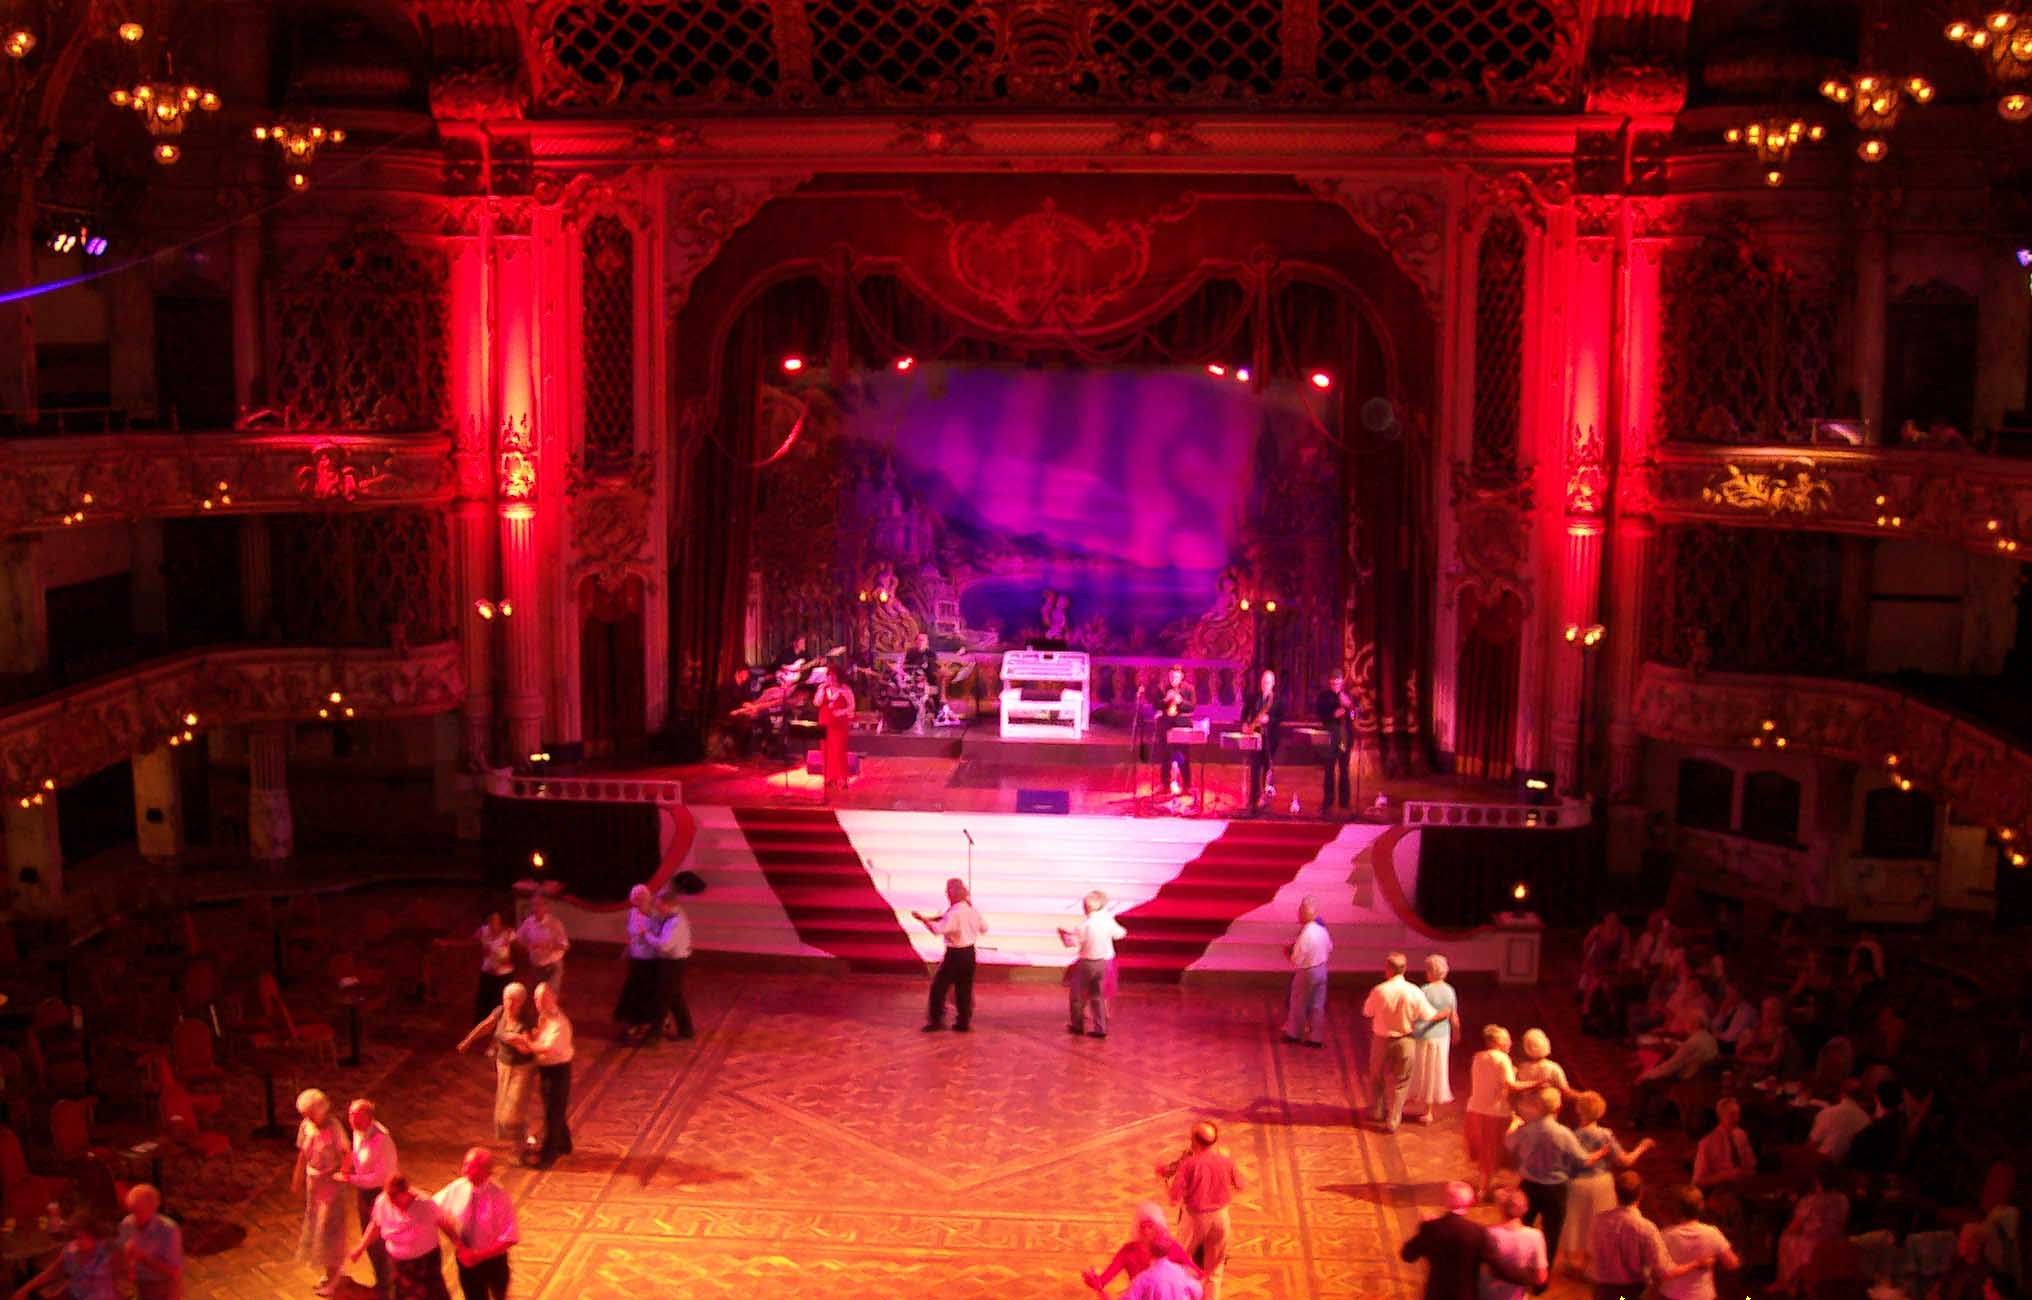 blackpool tower ballroom wallpapers - photo #5